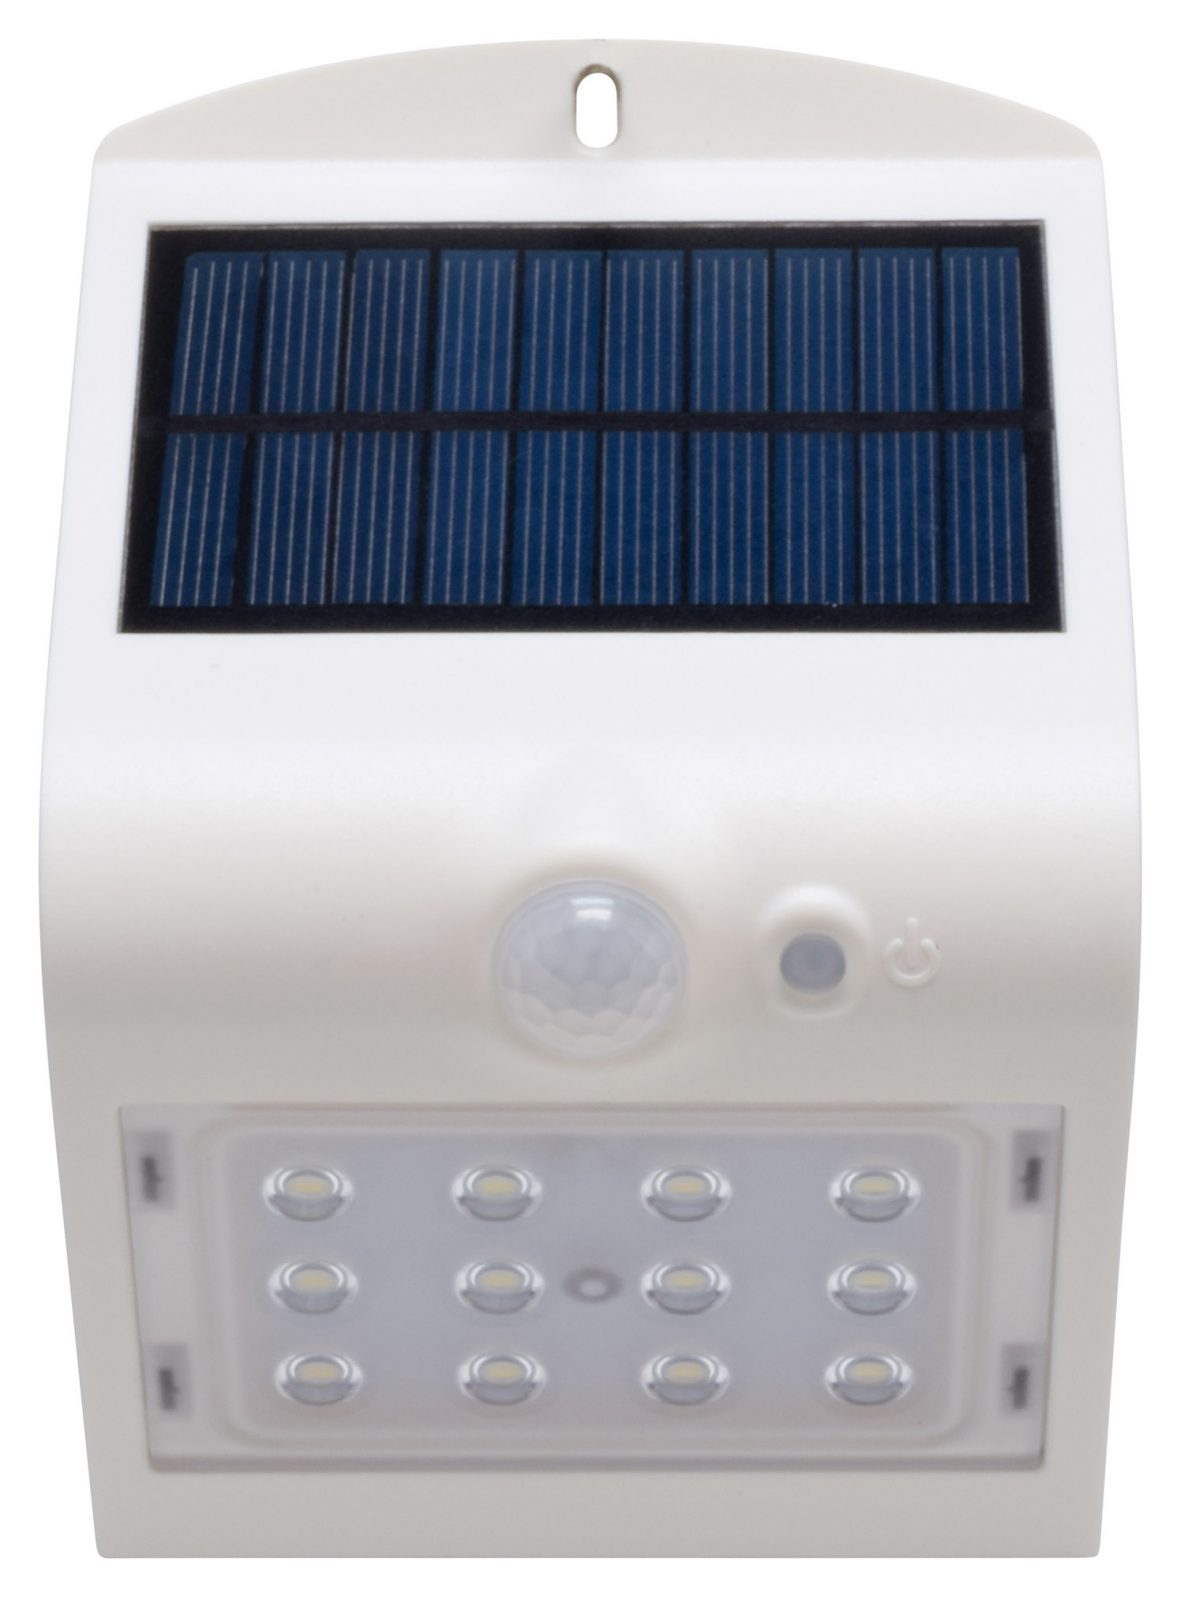 Valterra Outdoor Solar Light, 1.5 Watt 200 Lumens - The RV Parts House